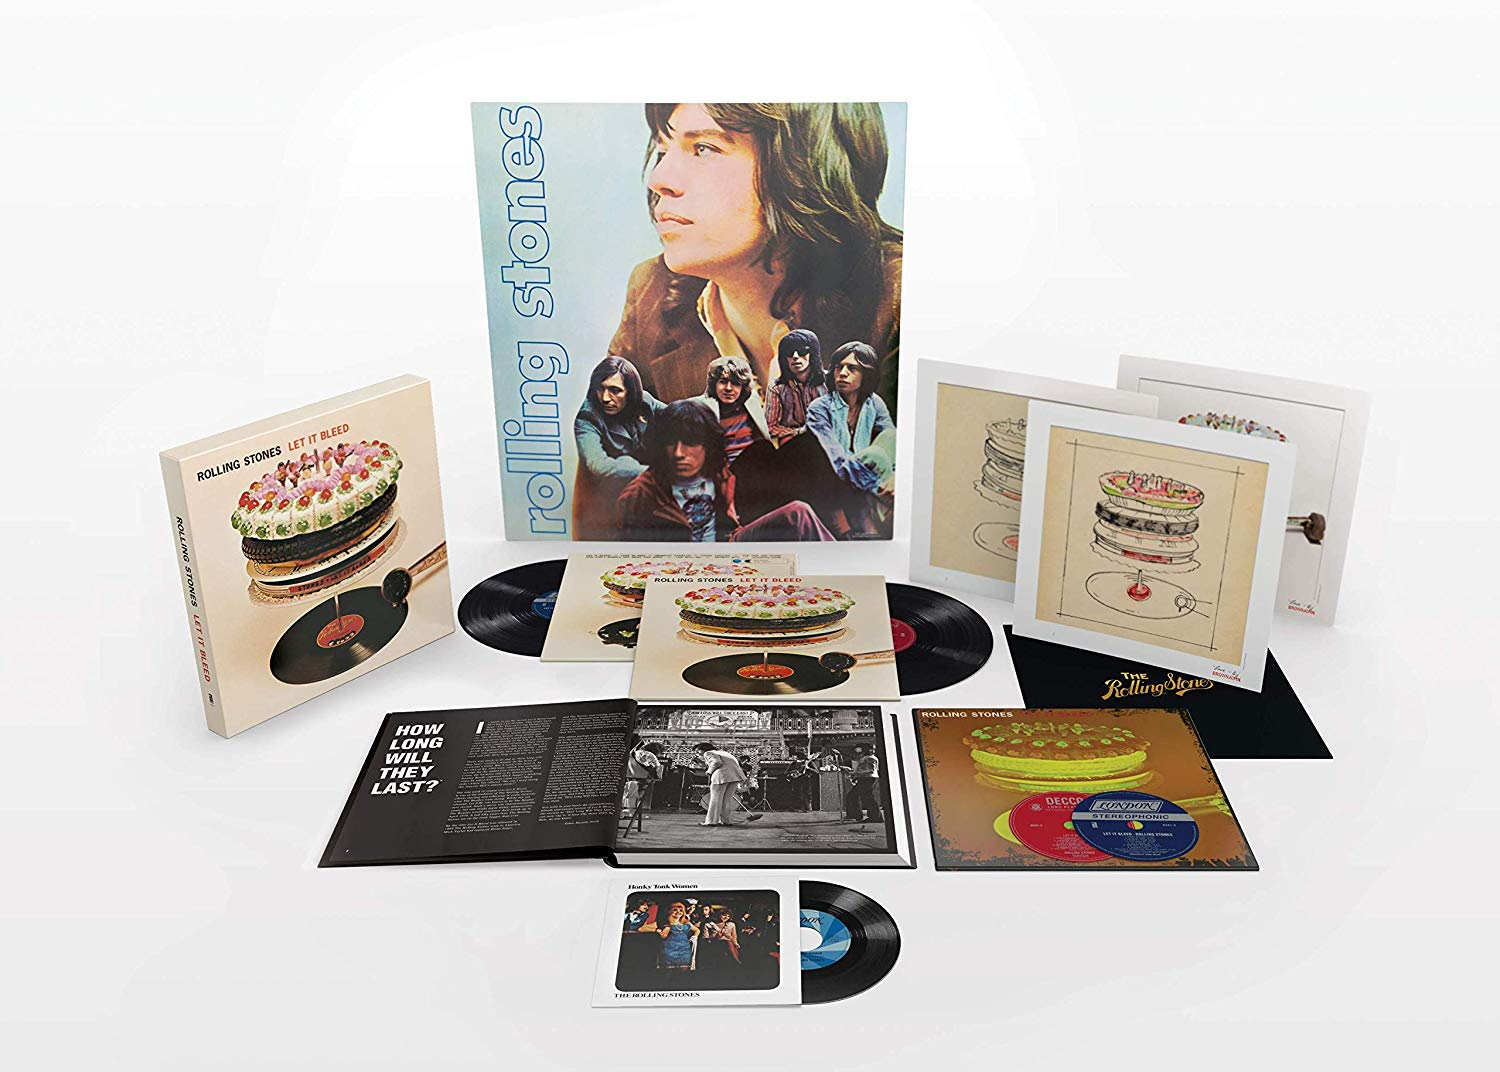 rolling stones reissue let it bleed 50th anniversary The Rolling Stones announce 50th anniversary reissue of Let It Bleed